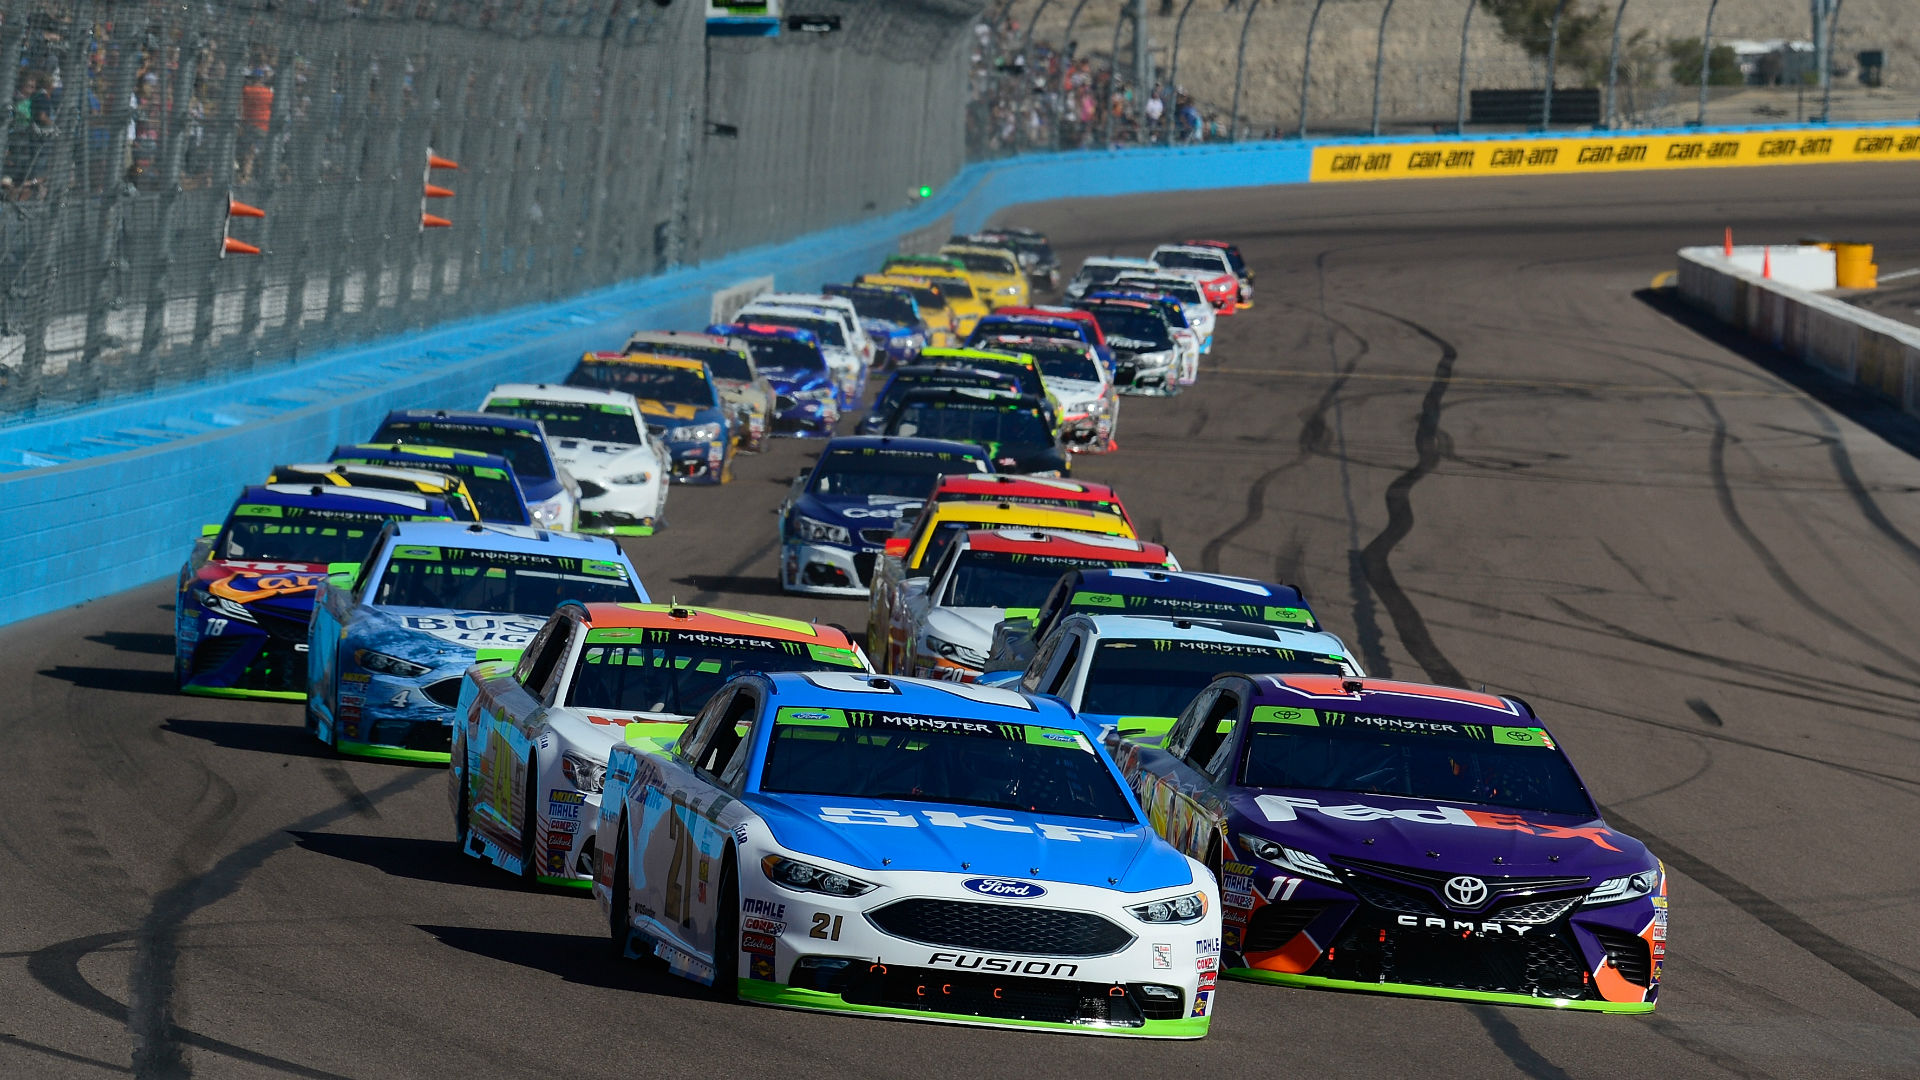 Nascar Schedule 2019 Date Time Tv Channels For Every Cup Series